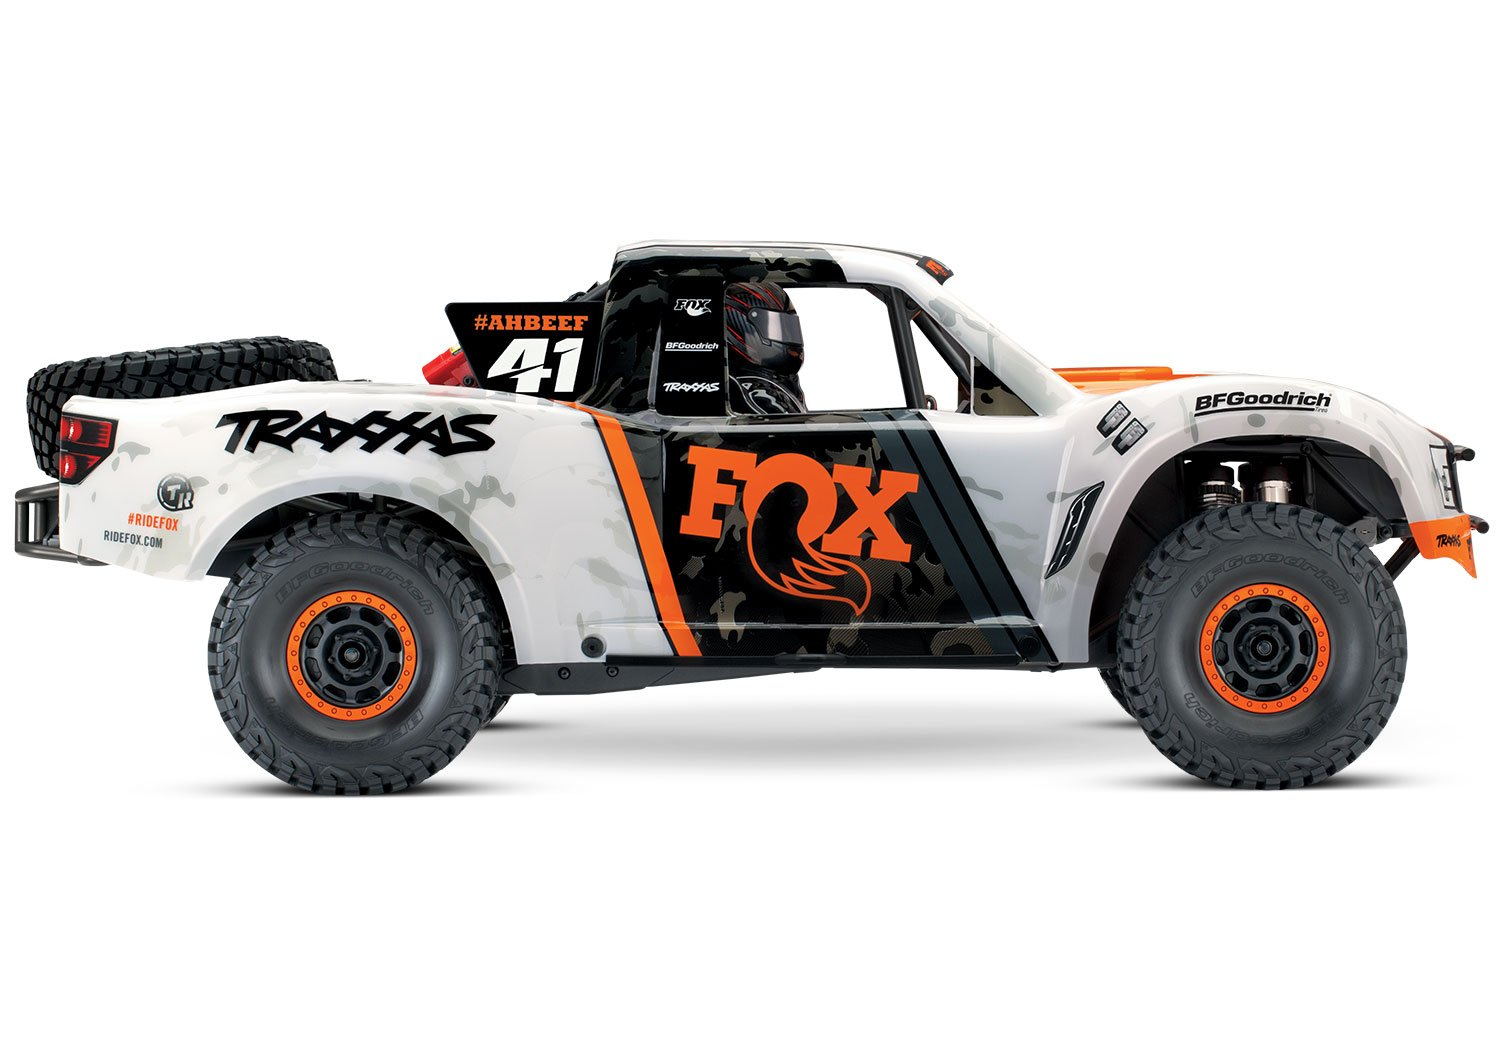 Traxxas 85076 4 Unlimited Desert Racer 4x4 Rc Race Truck 1 10 Scale Slash Pro 2wd Short Course 58034 White Orange Toys Games